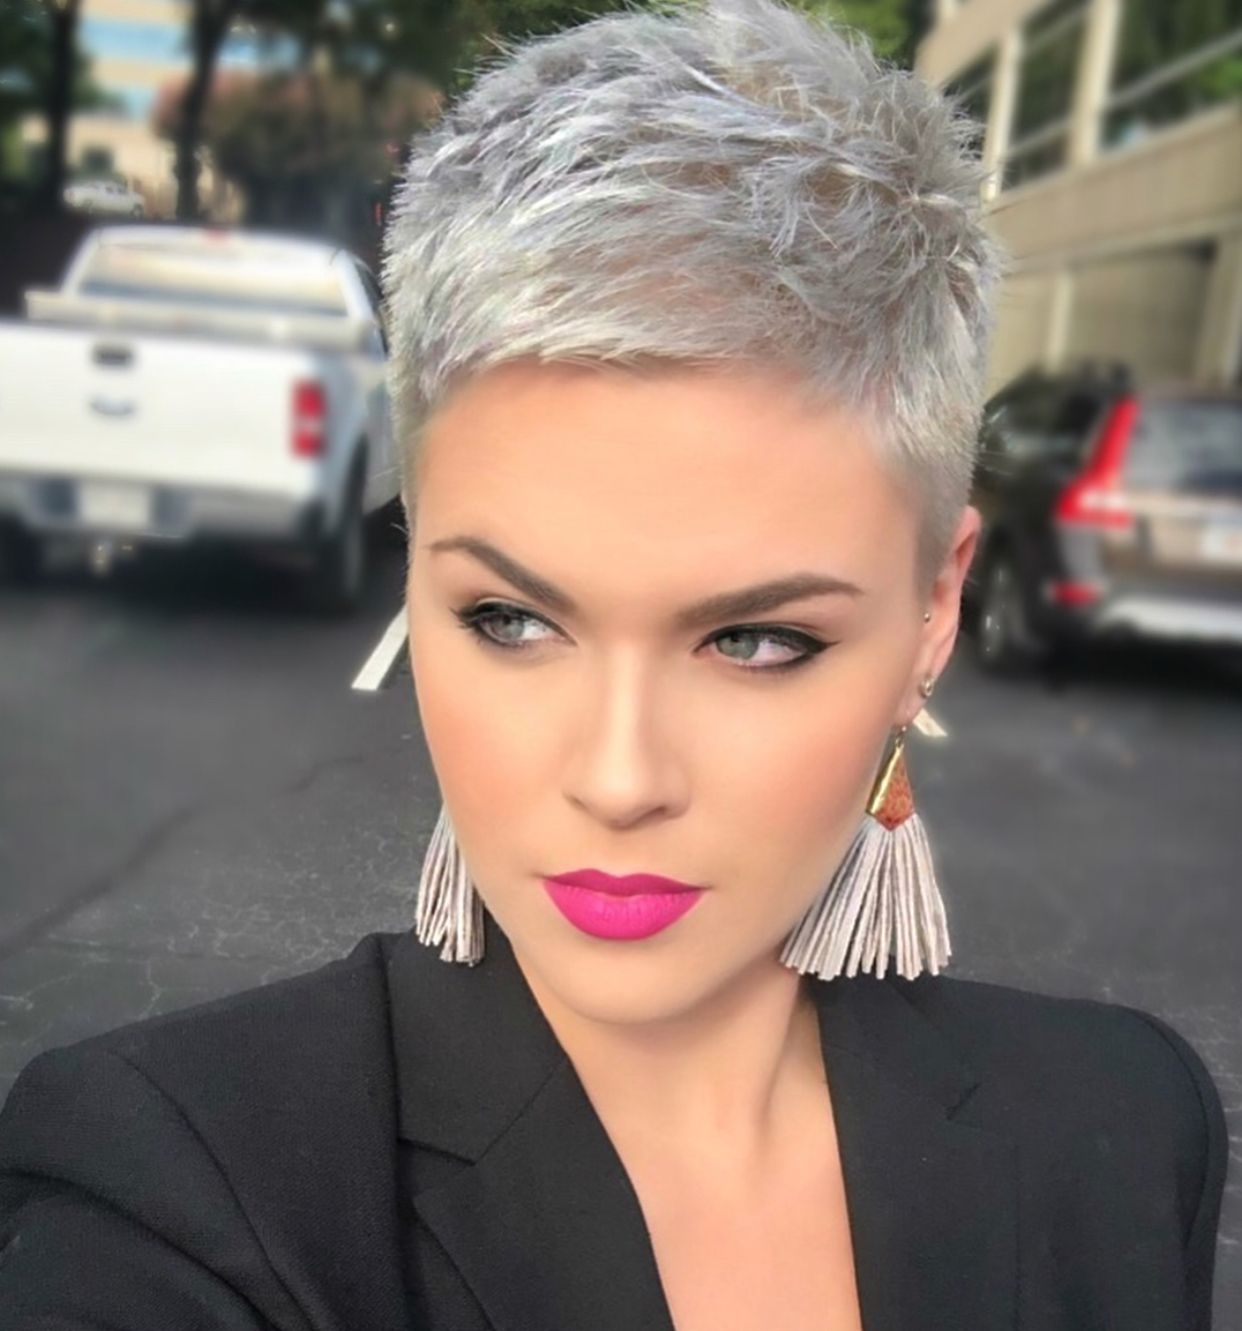 excellent makeup and haircut